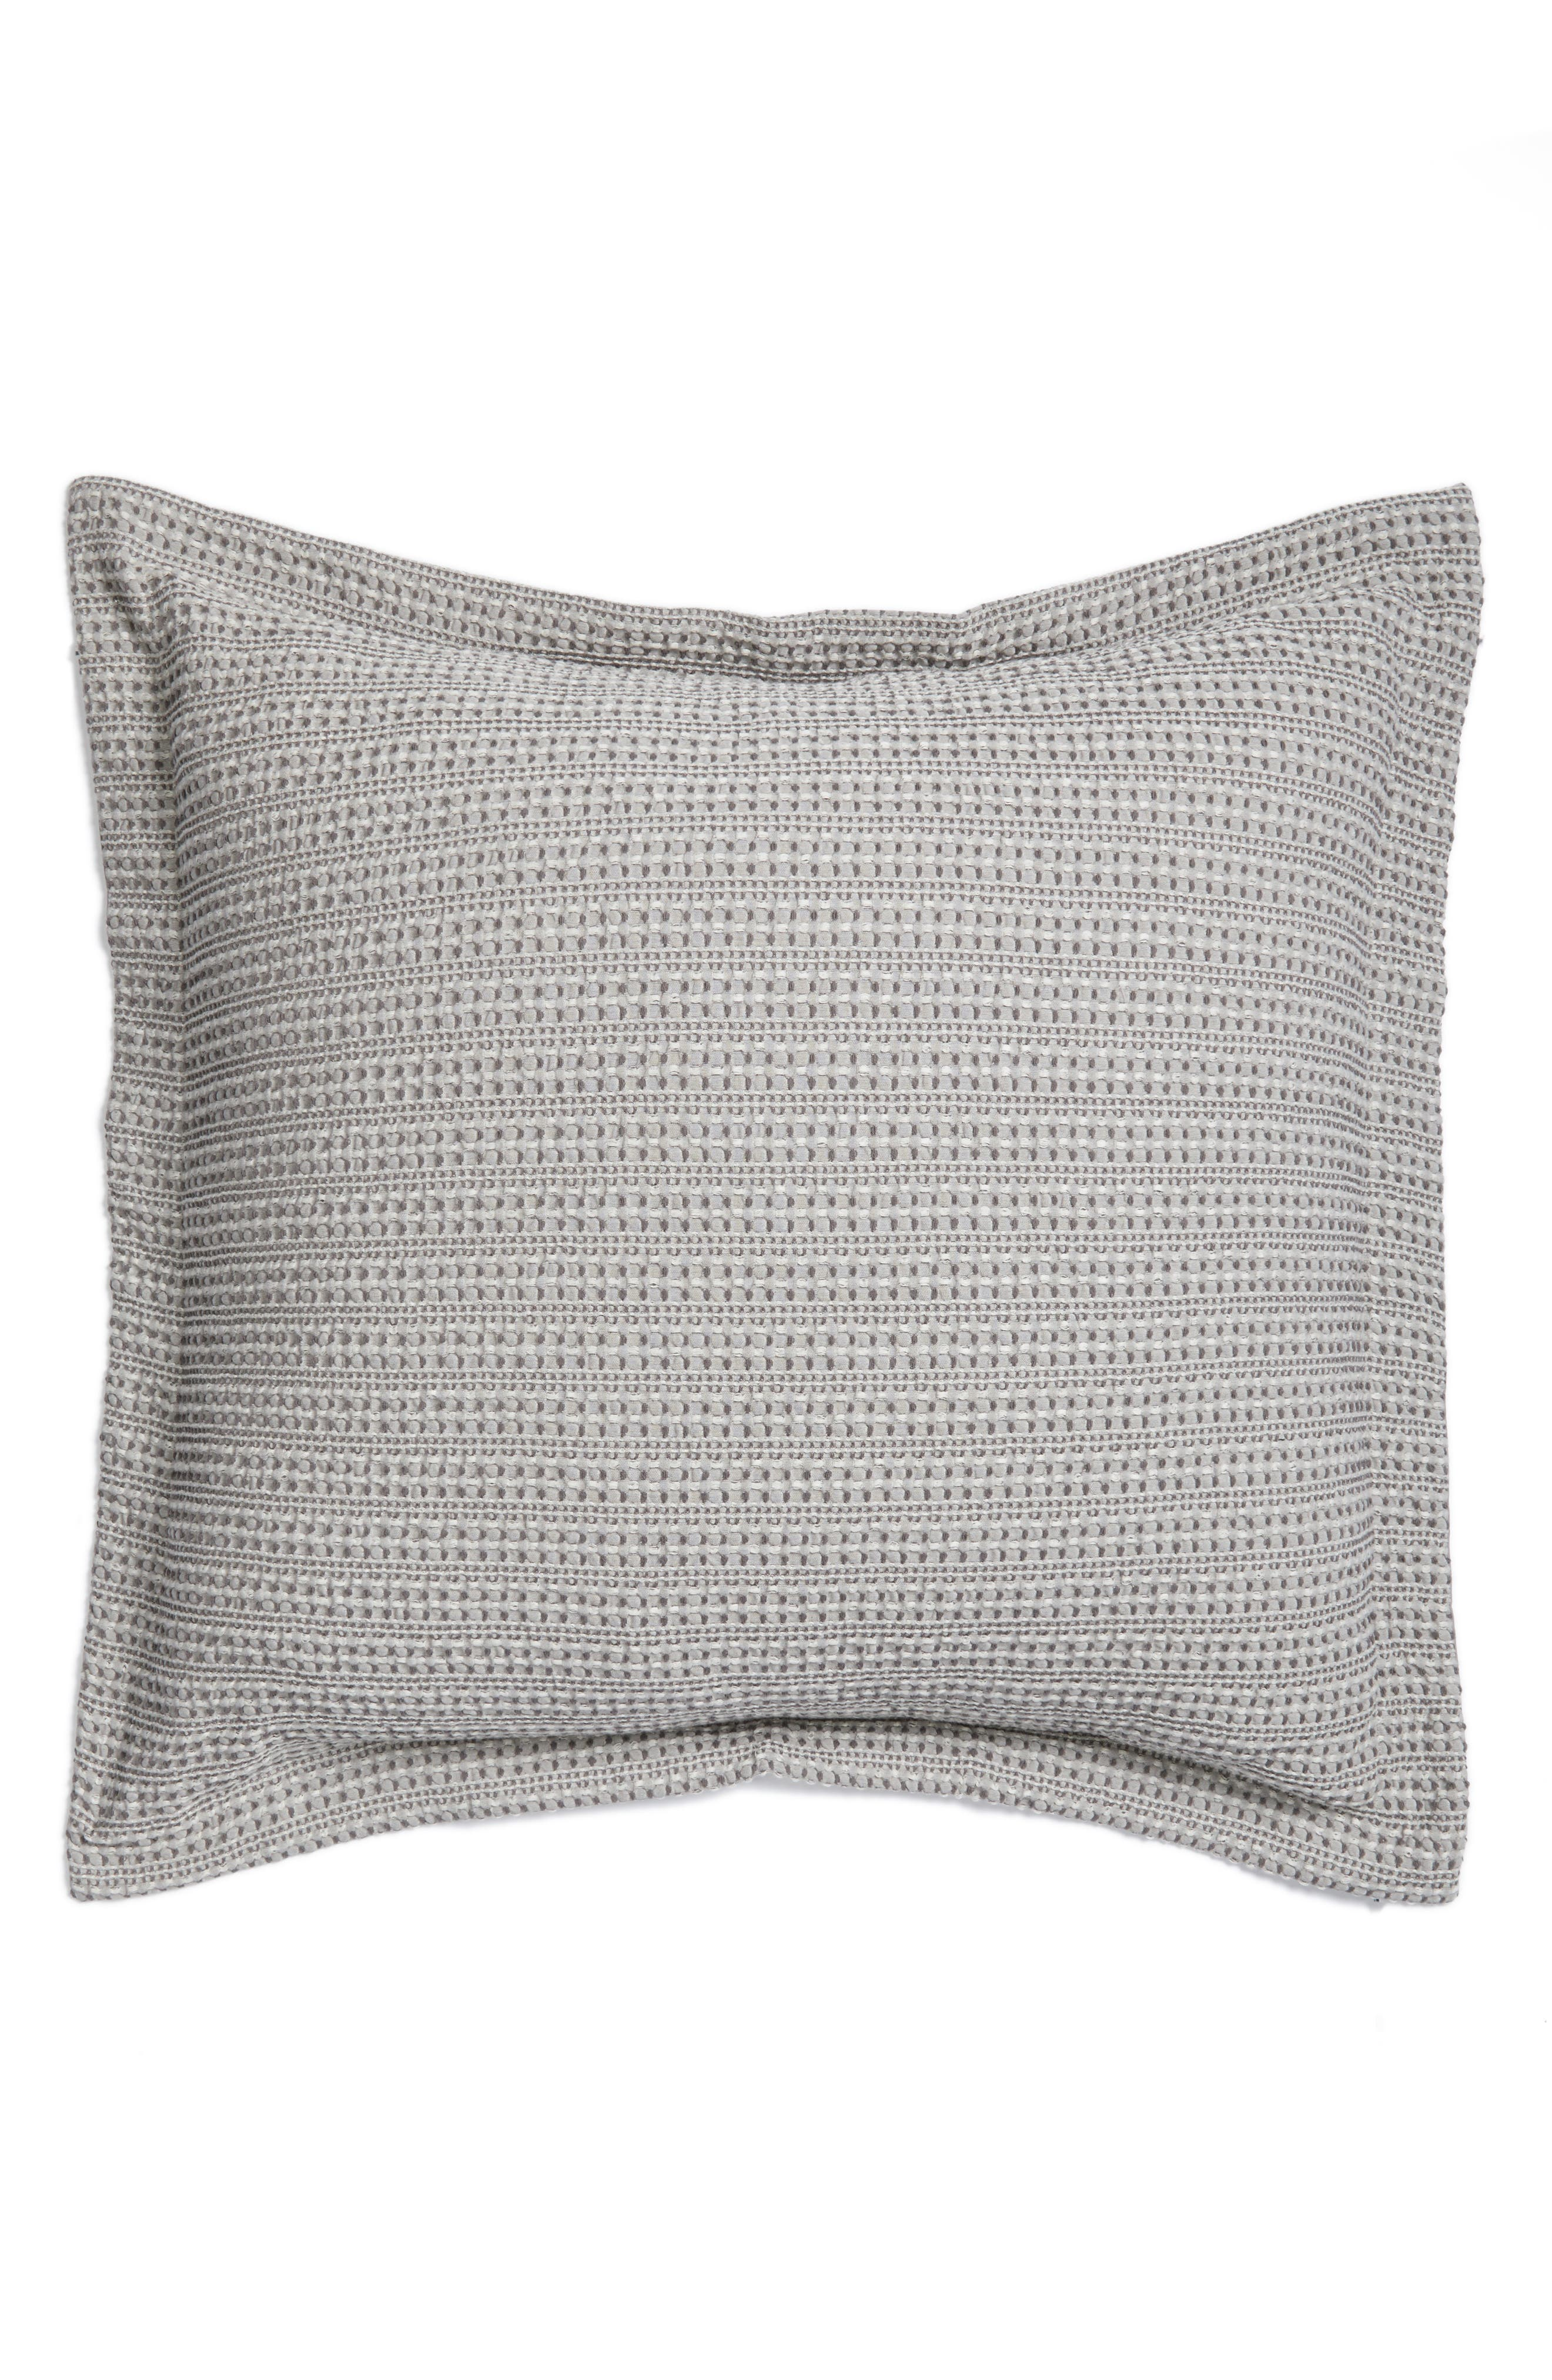 Stitched Accent Pillow,                         Main,                         color, 020